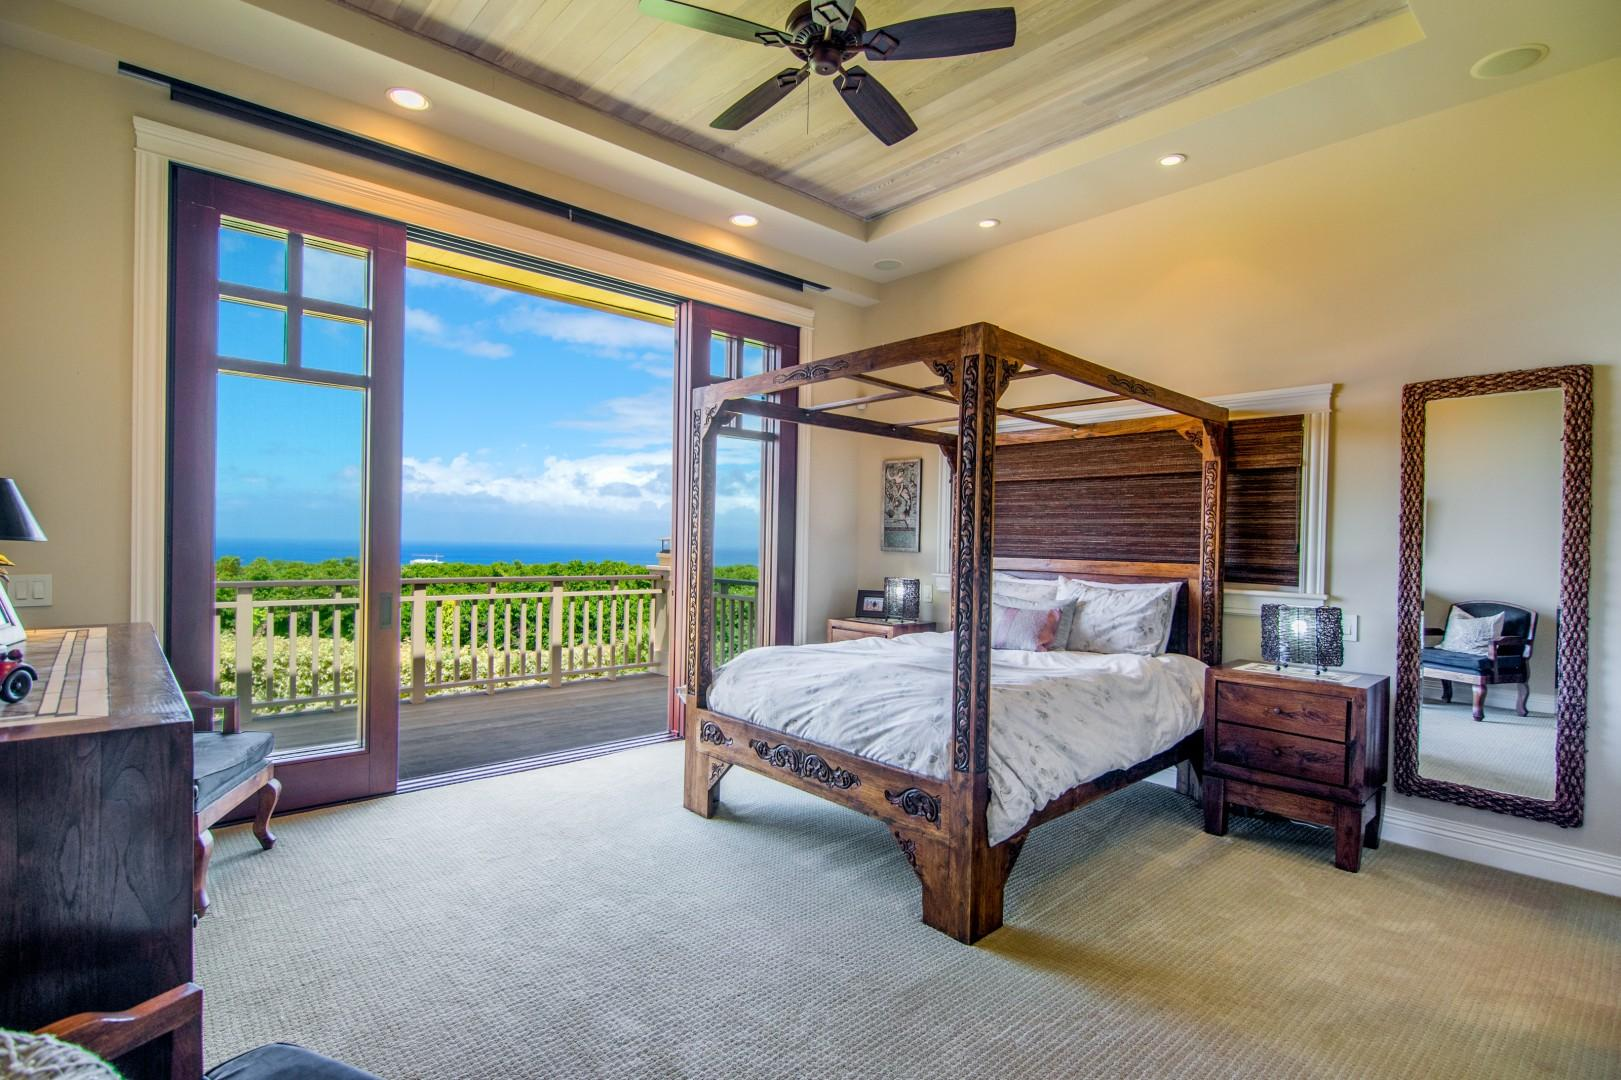 Guest Bedroom with Canopied Bed and Doors that Open to Bring in the Outside and View of the Ocean with En Suite Bathroom